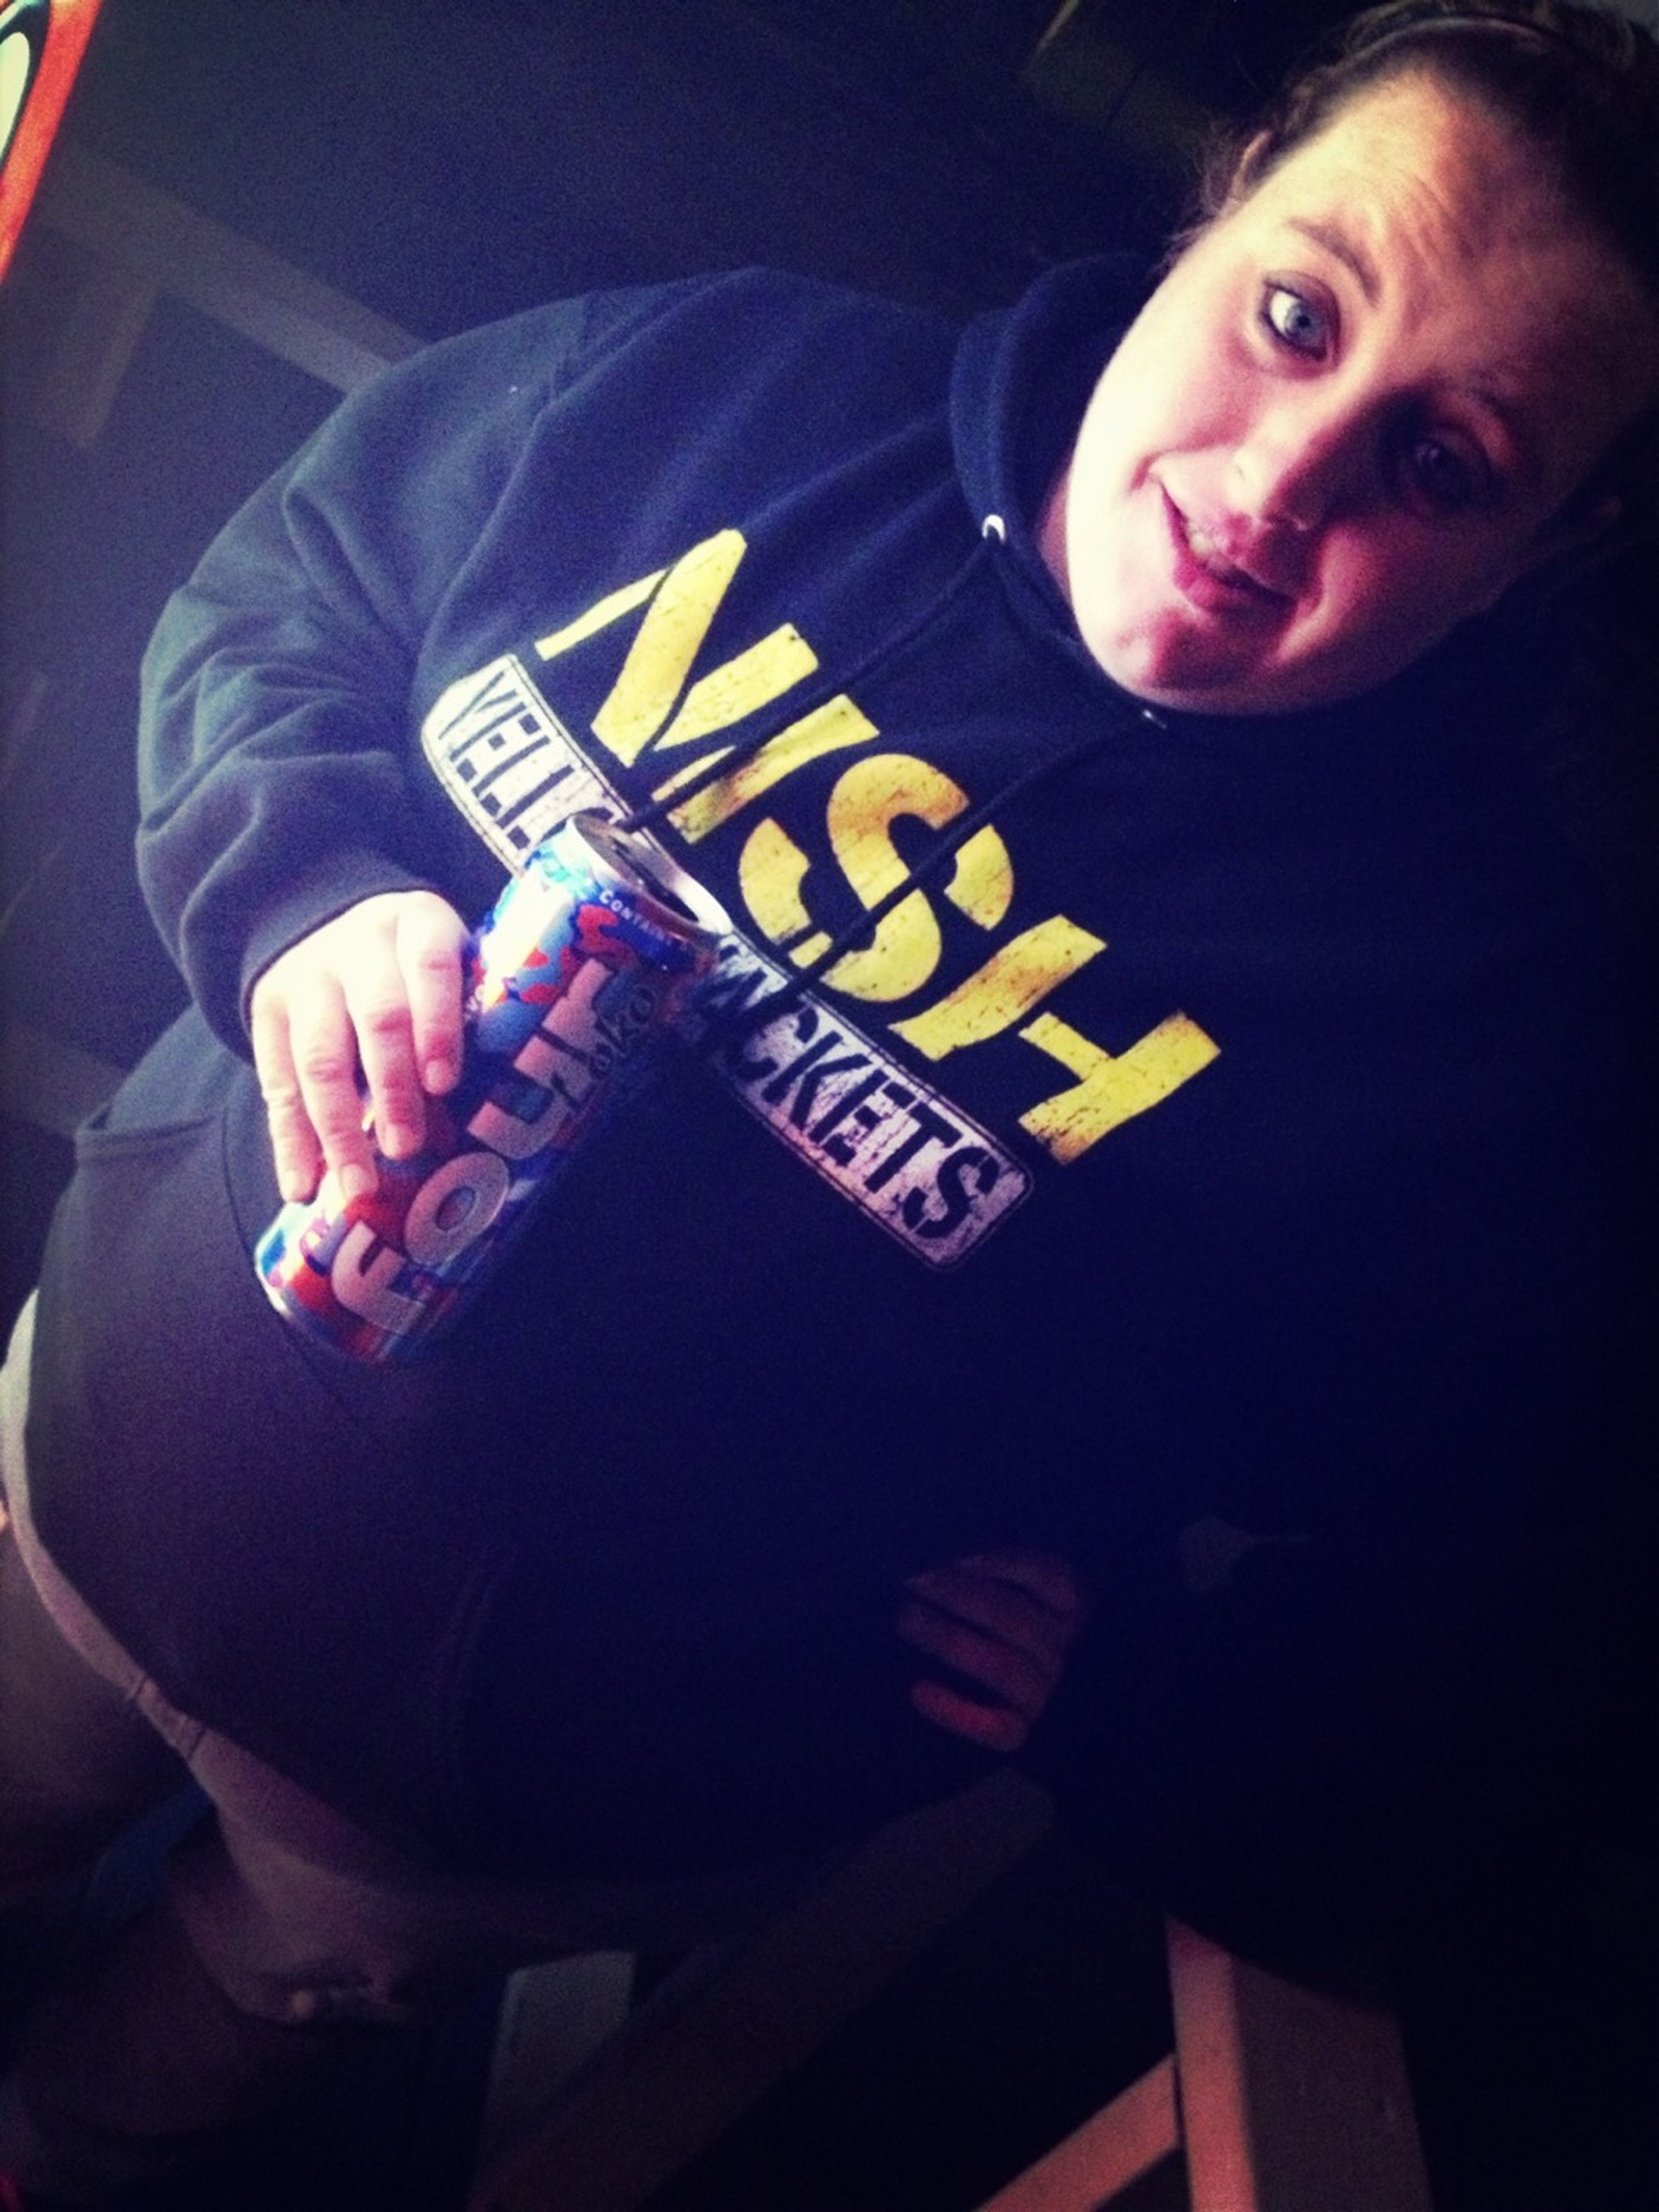 Sippin On Dat 4 Loko (;